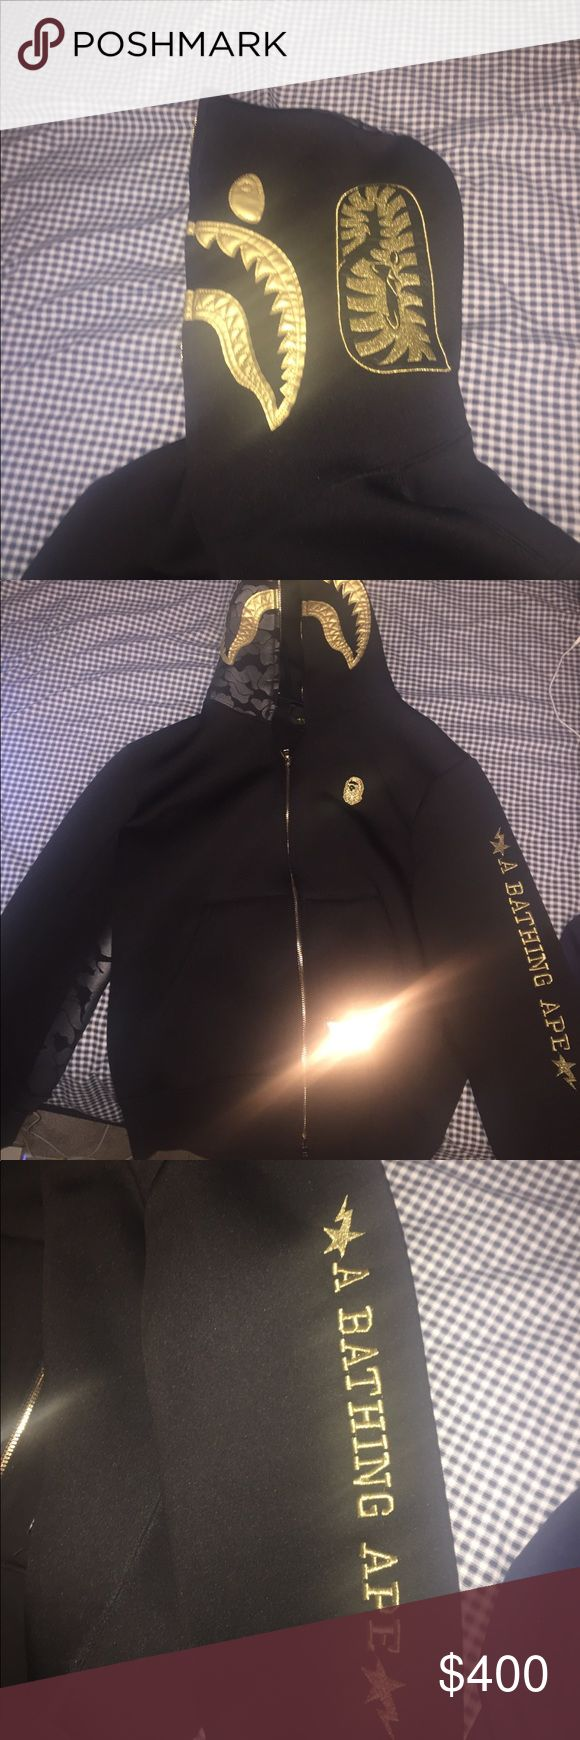 Black & Gold BAPE x TRAVIS SCOTT Shark Hoodie Authentic A Bathing Ape Hoodie x Travis Scott Shark Hoodie. Black & Gold. Size L. Only worn a couple times. Great Condition BAPE Shirts Sweatshirts & Hoodies